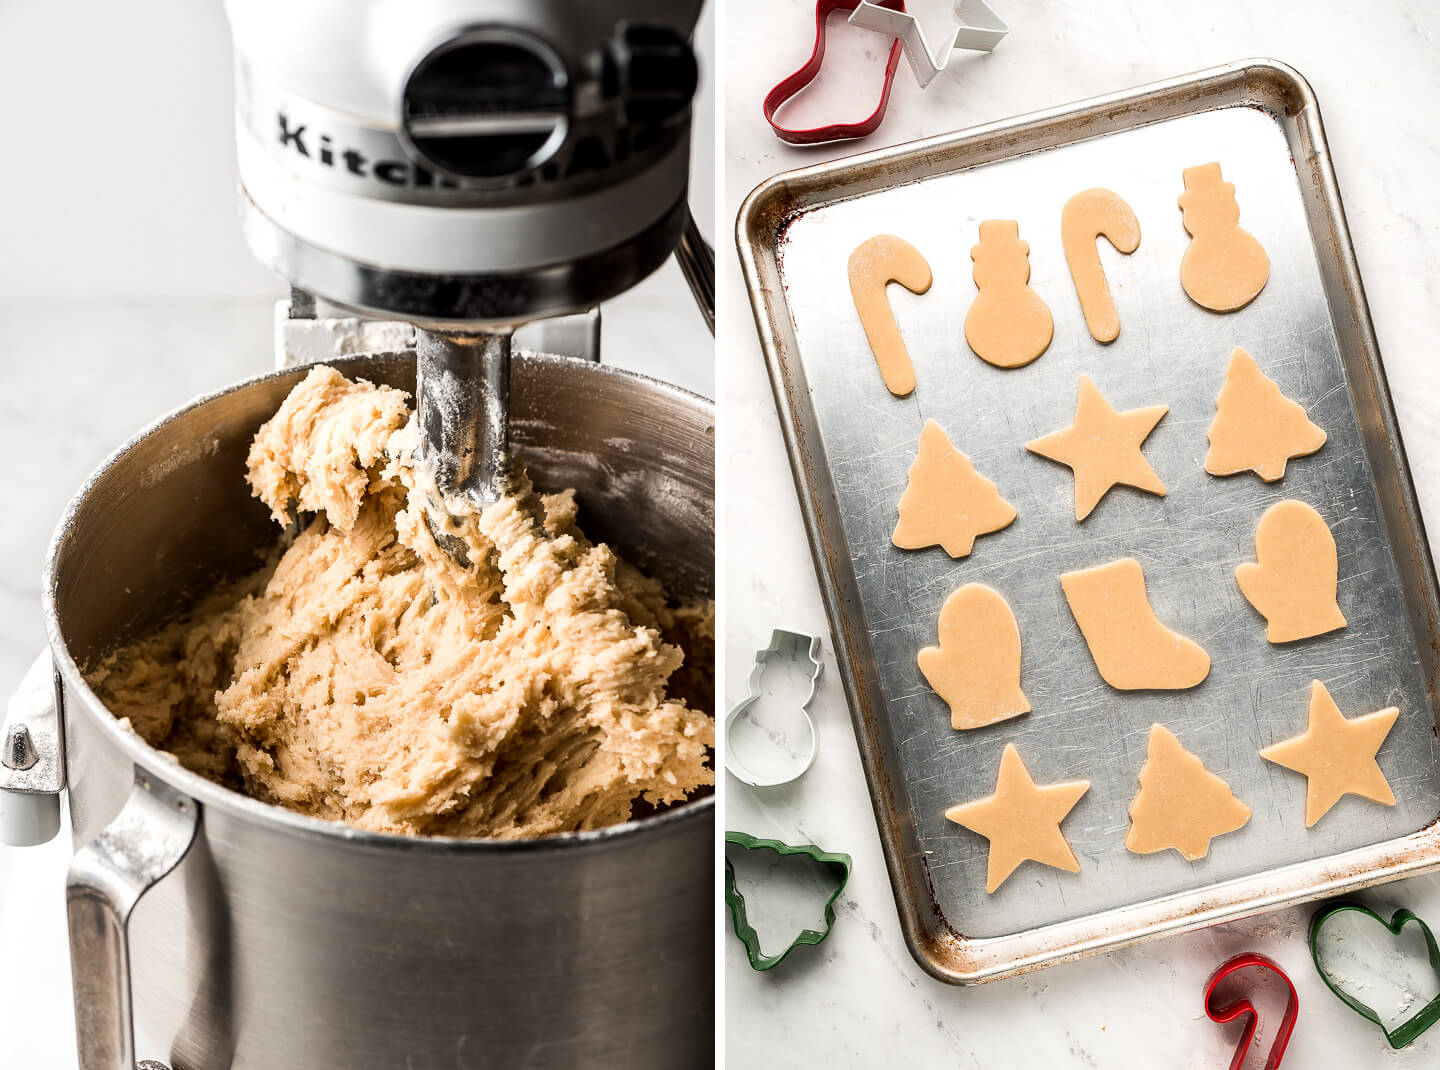 Sugar cookie dough in a KitchenAid mixer and cut out dough on a pan.